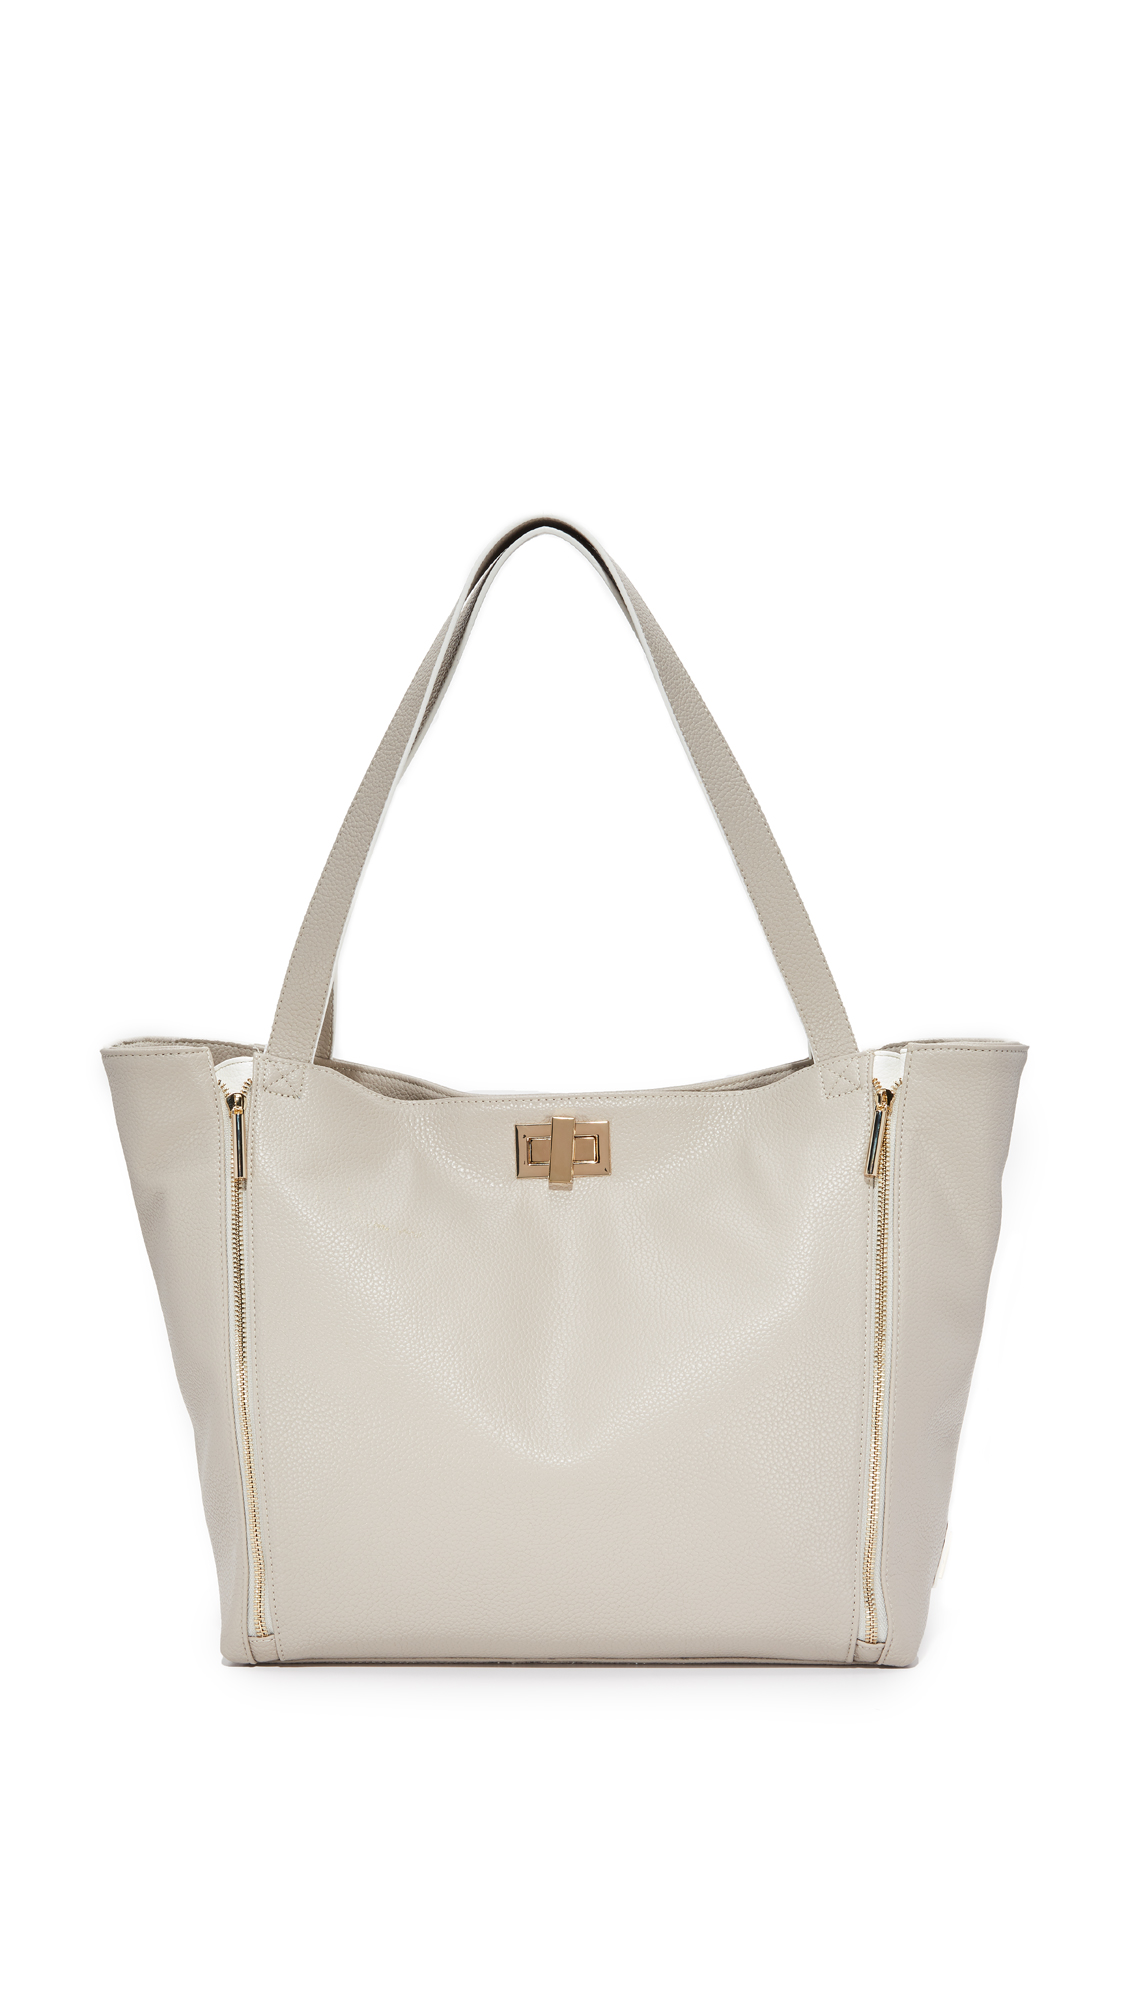 Rosie Pope The Sloane Tote - Neutral